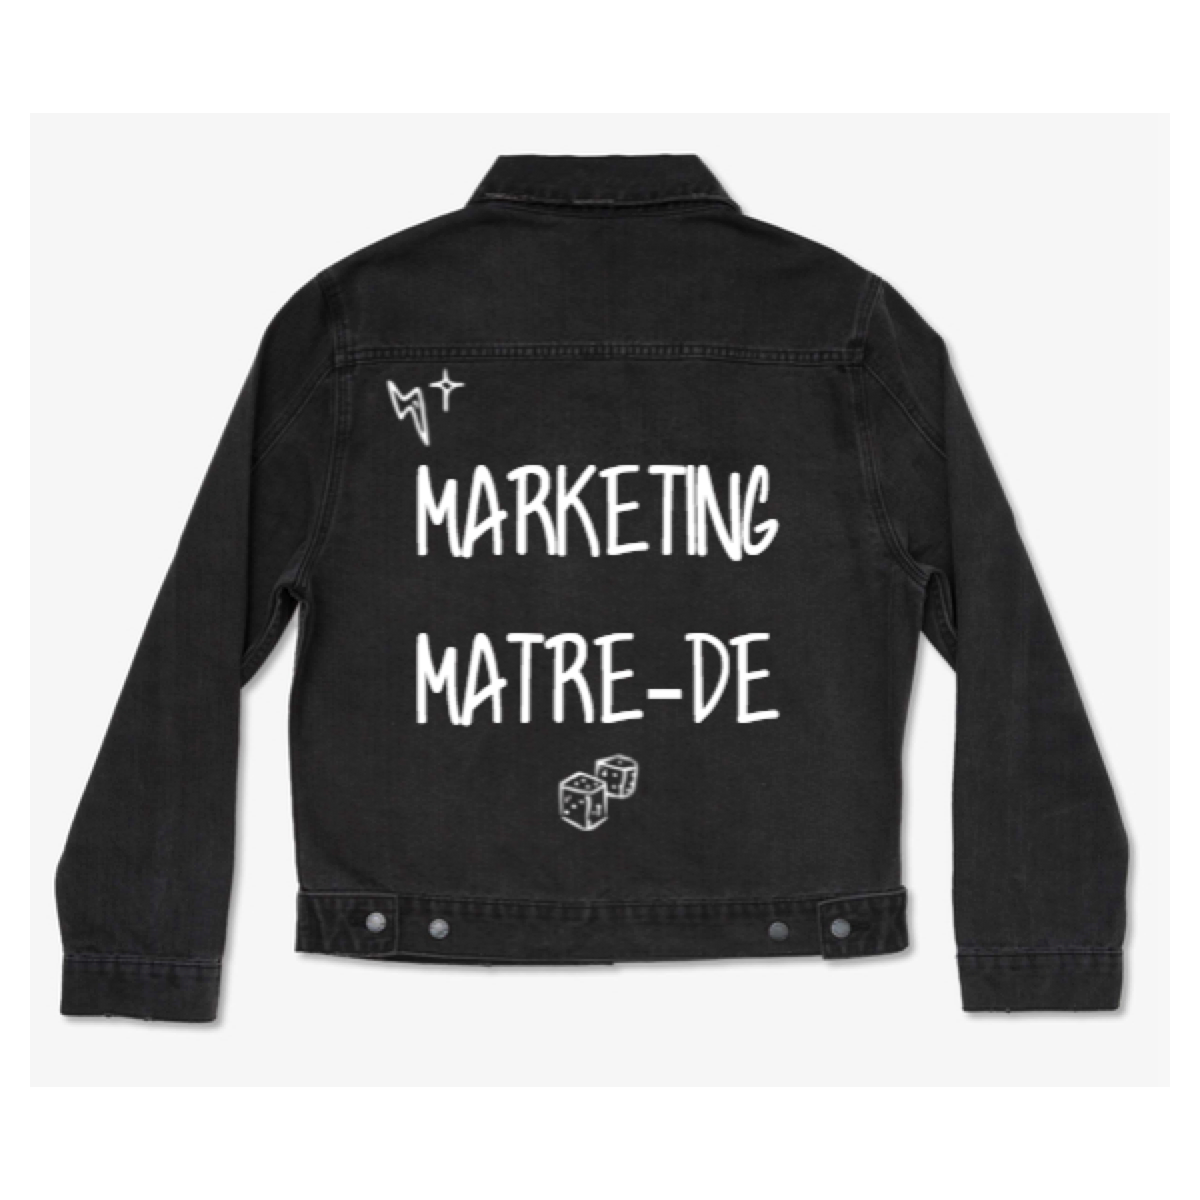 G Method Of Denim'S Marketing Matre-De